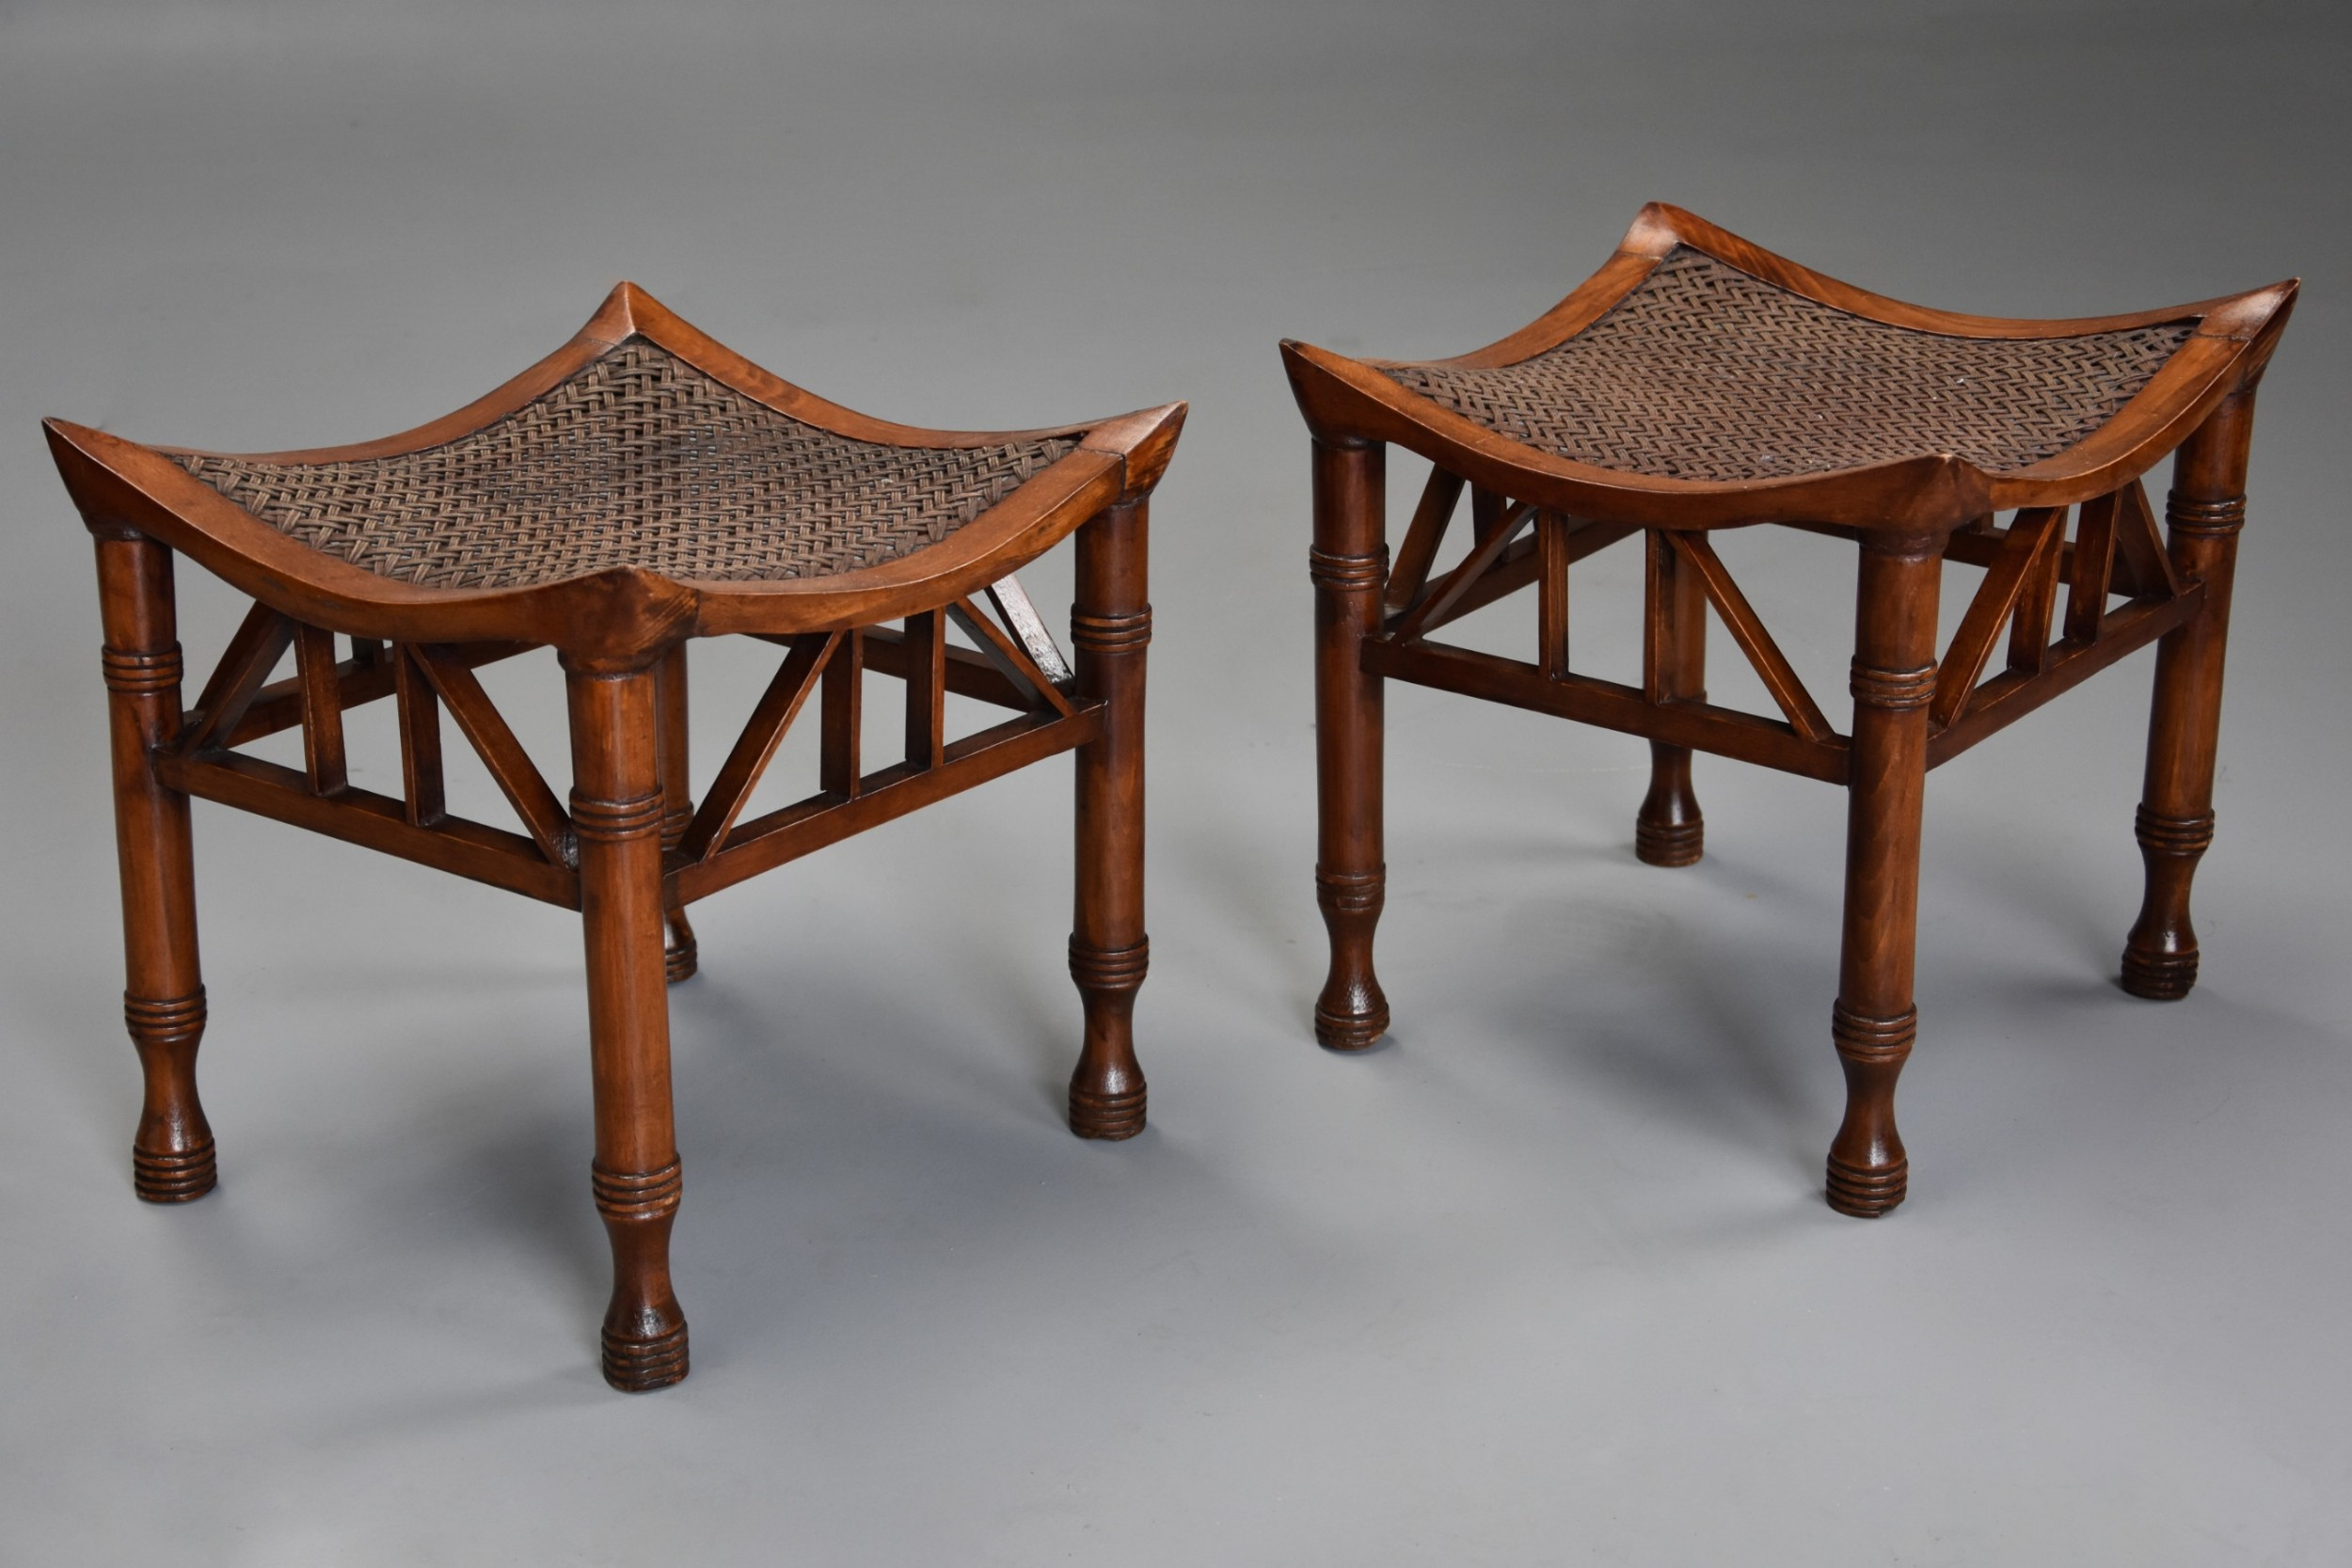 pair of early 20th century walnut thebes stools designed by liberty co